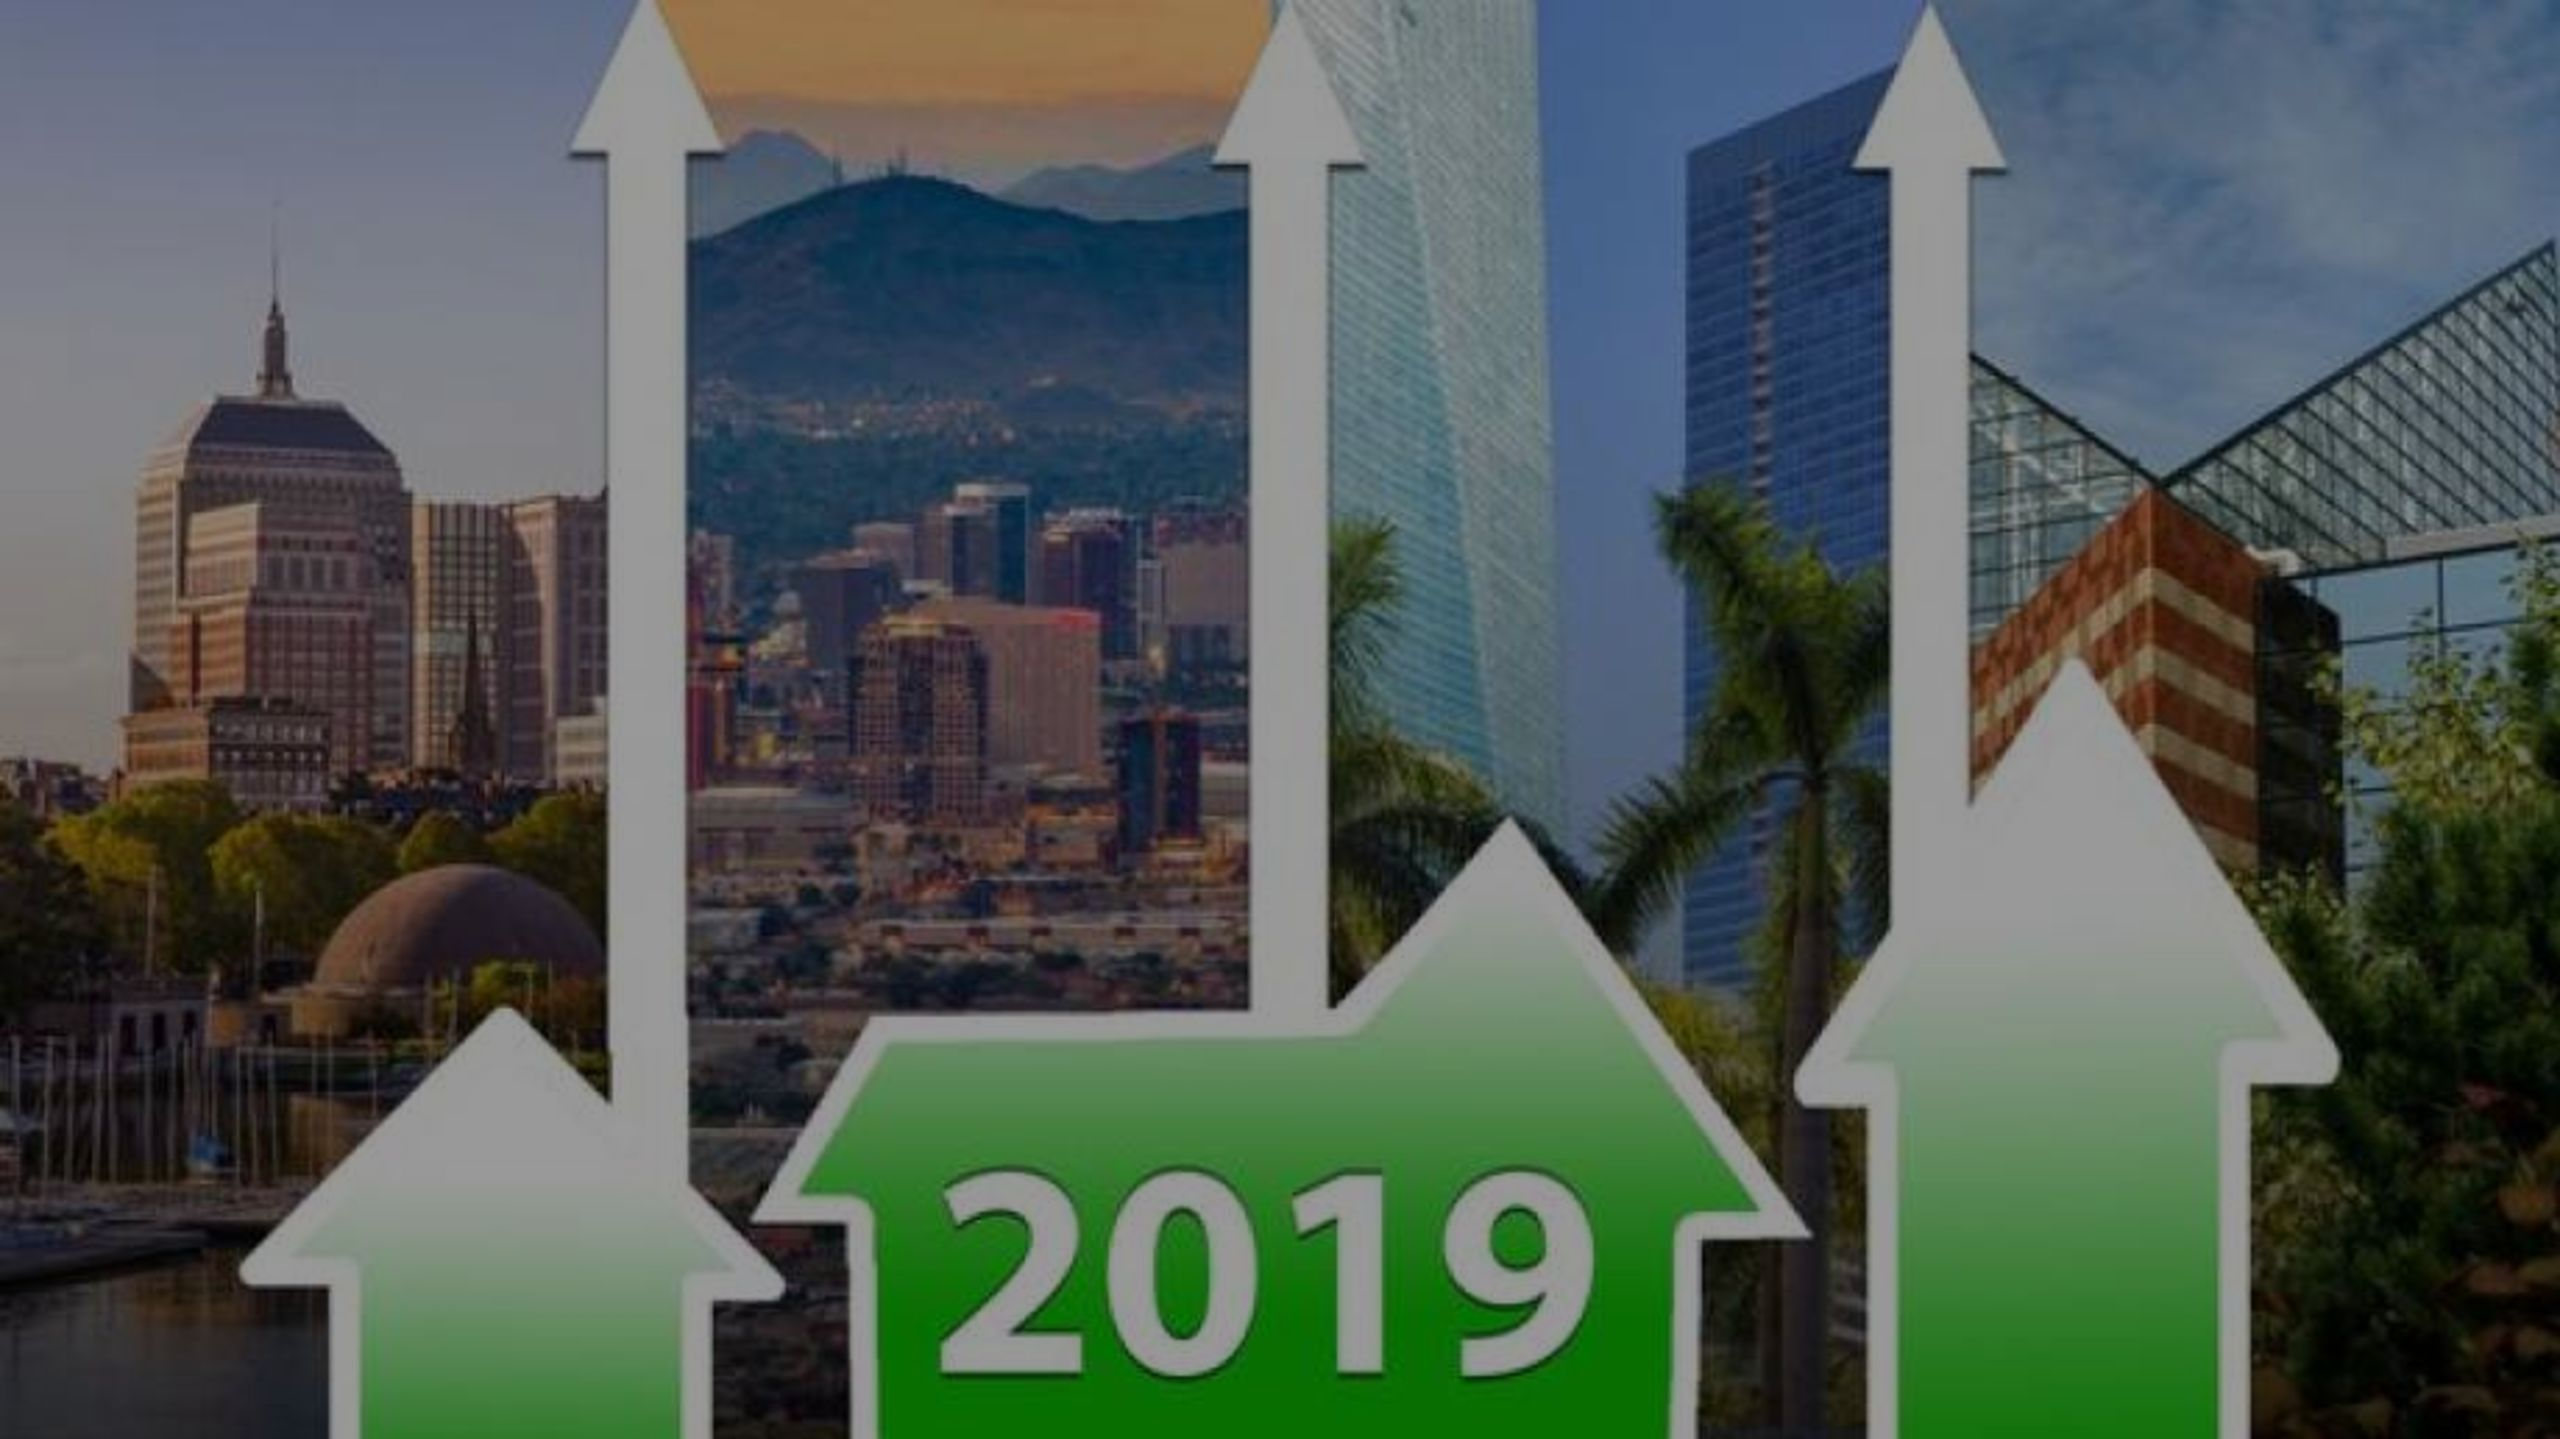 The Top 10 Housing Markets Poised to Rule in 2019